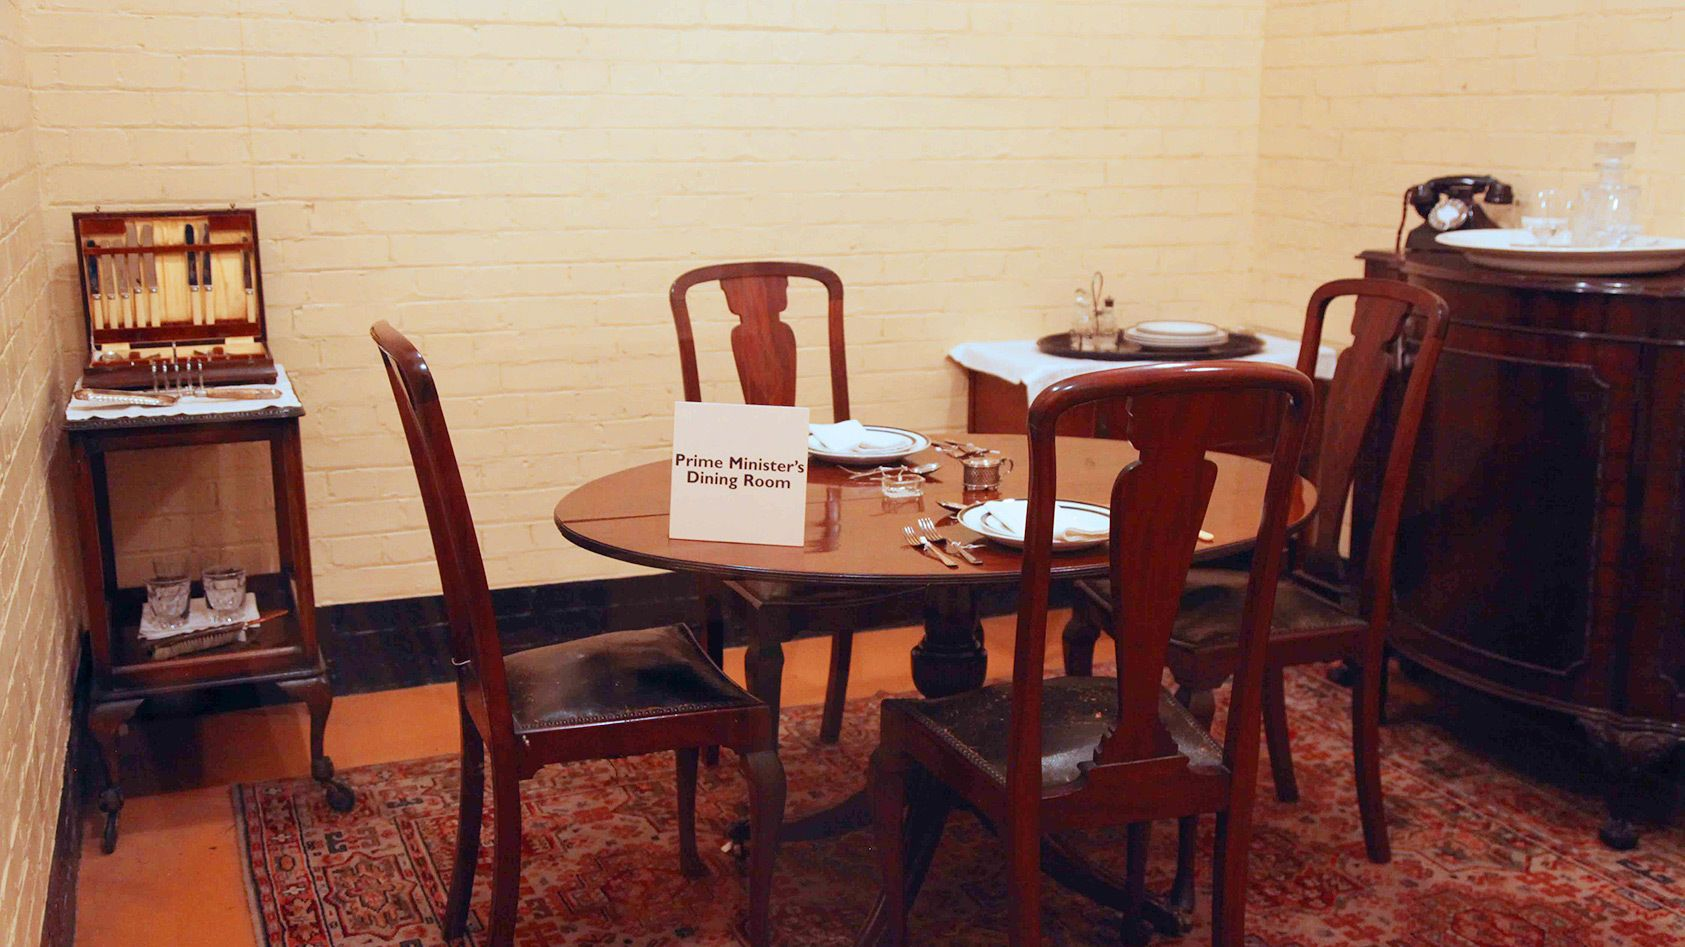 diner table set for Churchill at Churchhill War Room museum in London